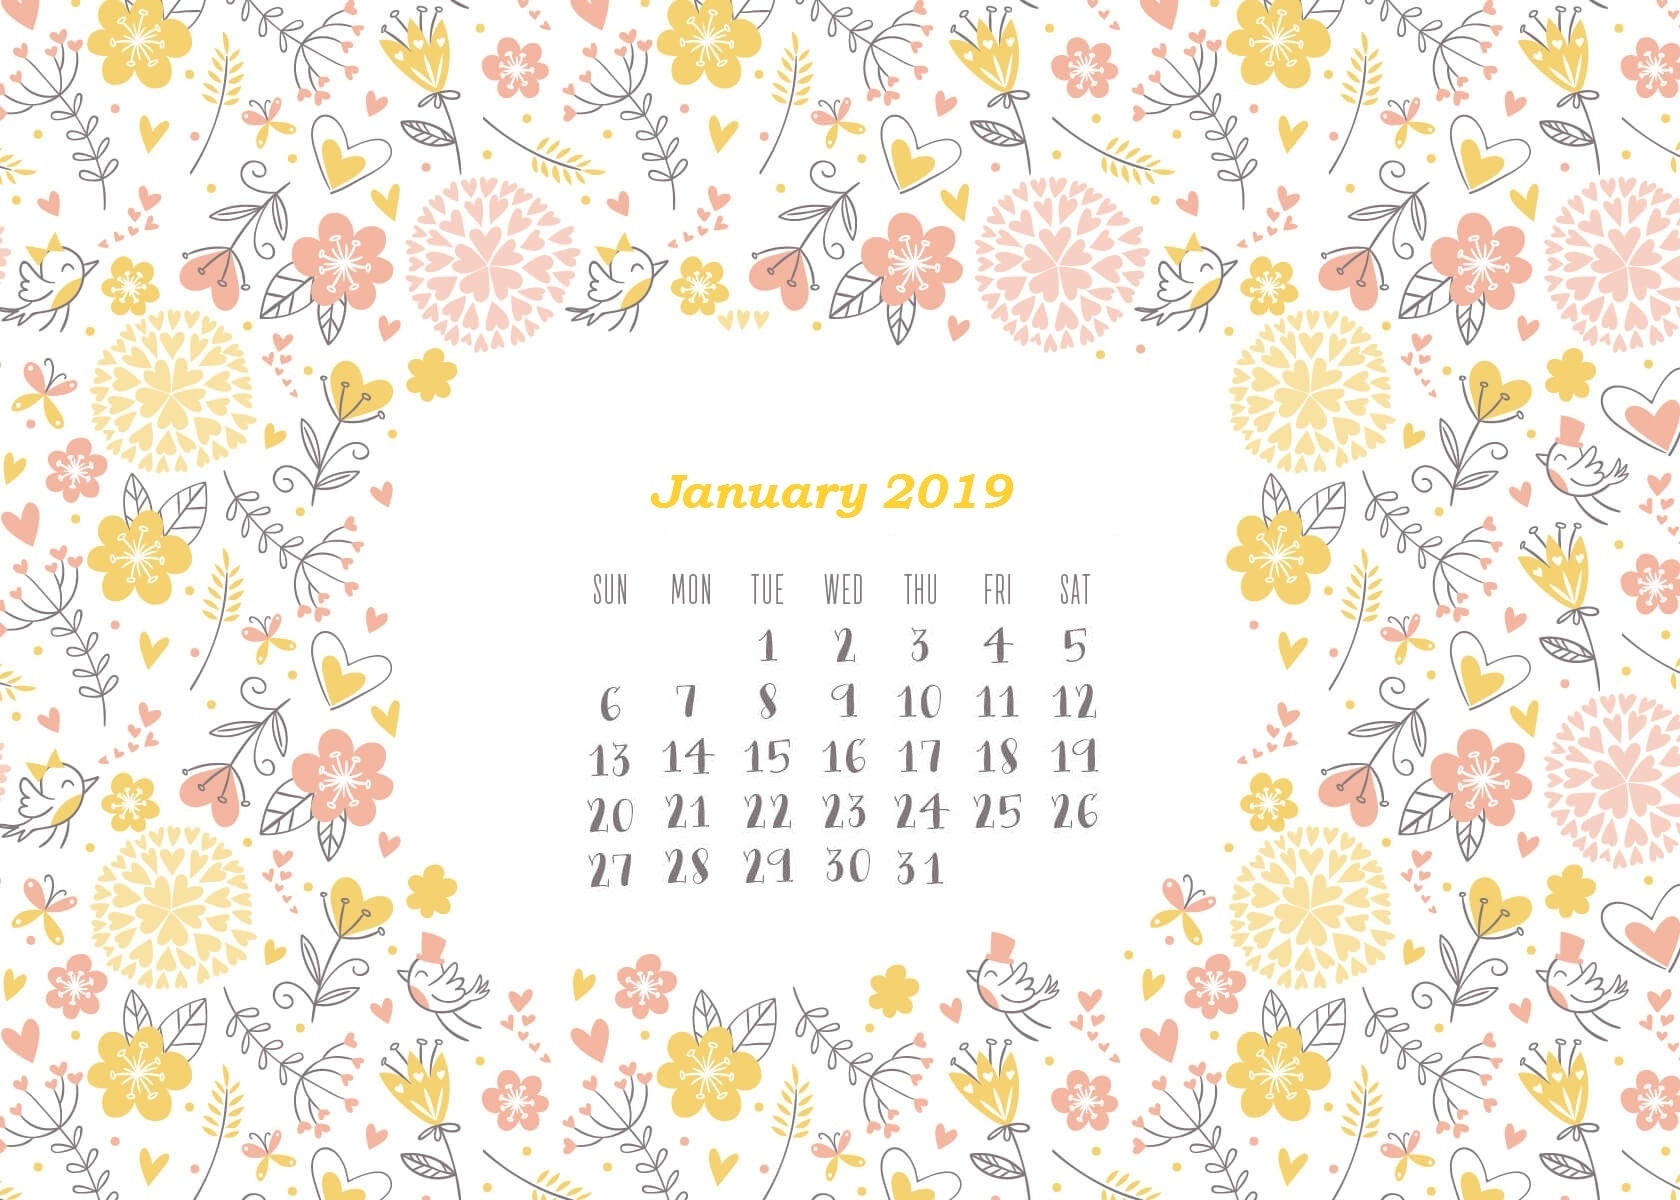 Download January Wallpaper (58+) - Free Wallpaper For Your Screen. with regard to Calendars For January Background Designs